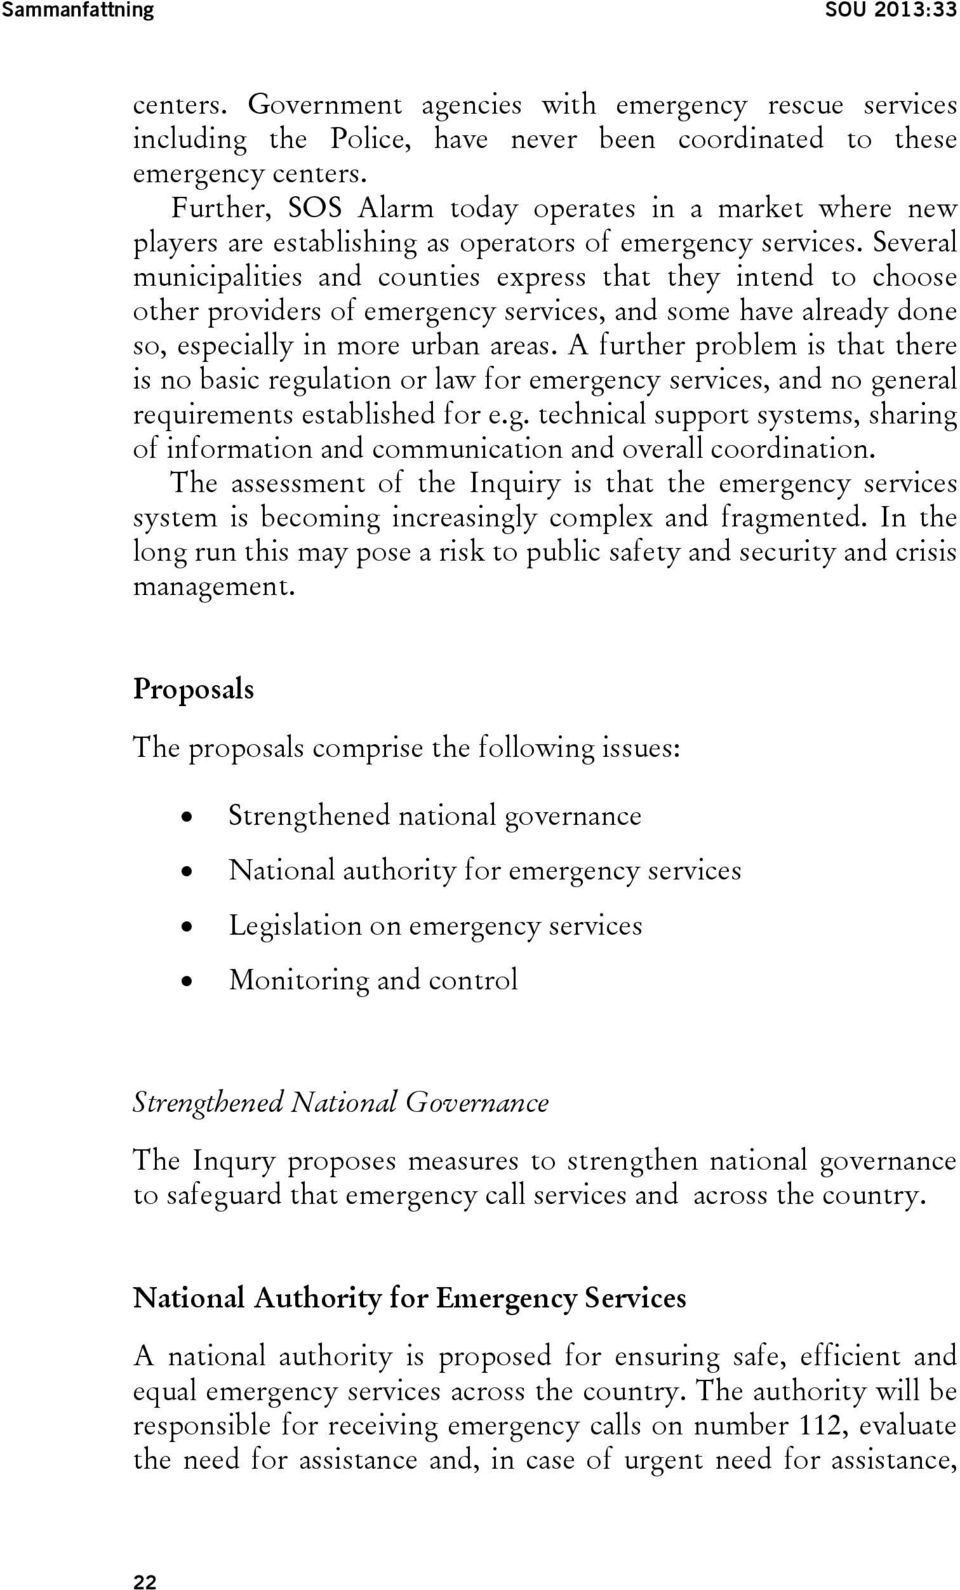 Several municipalities and counties express that they intend to choose other providers of emergency services, and some have already done so, especially in more urban areas.